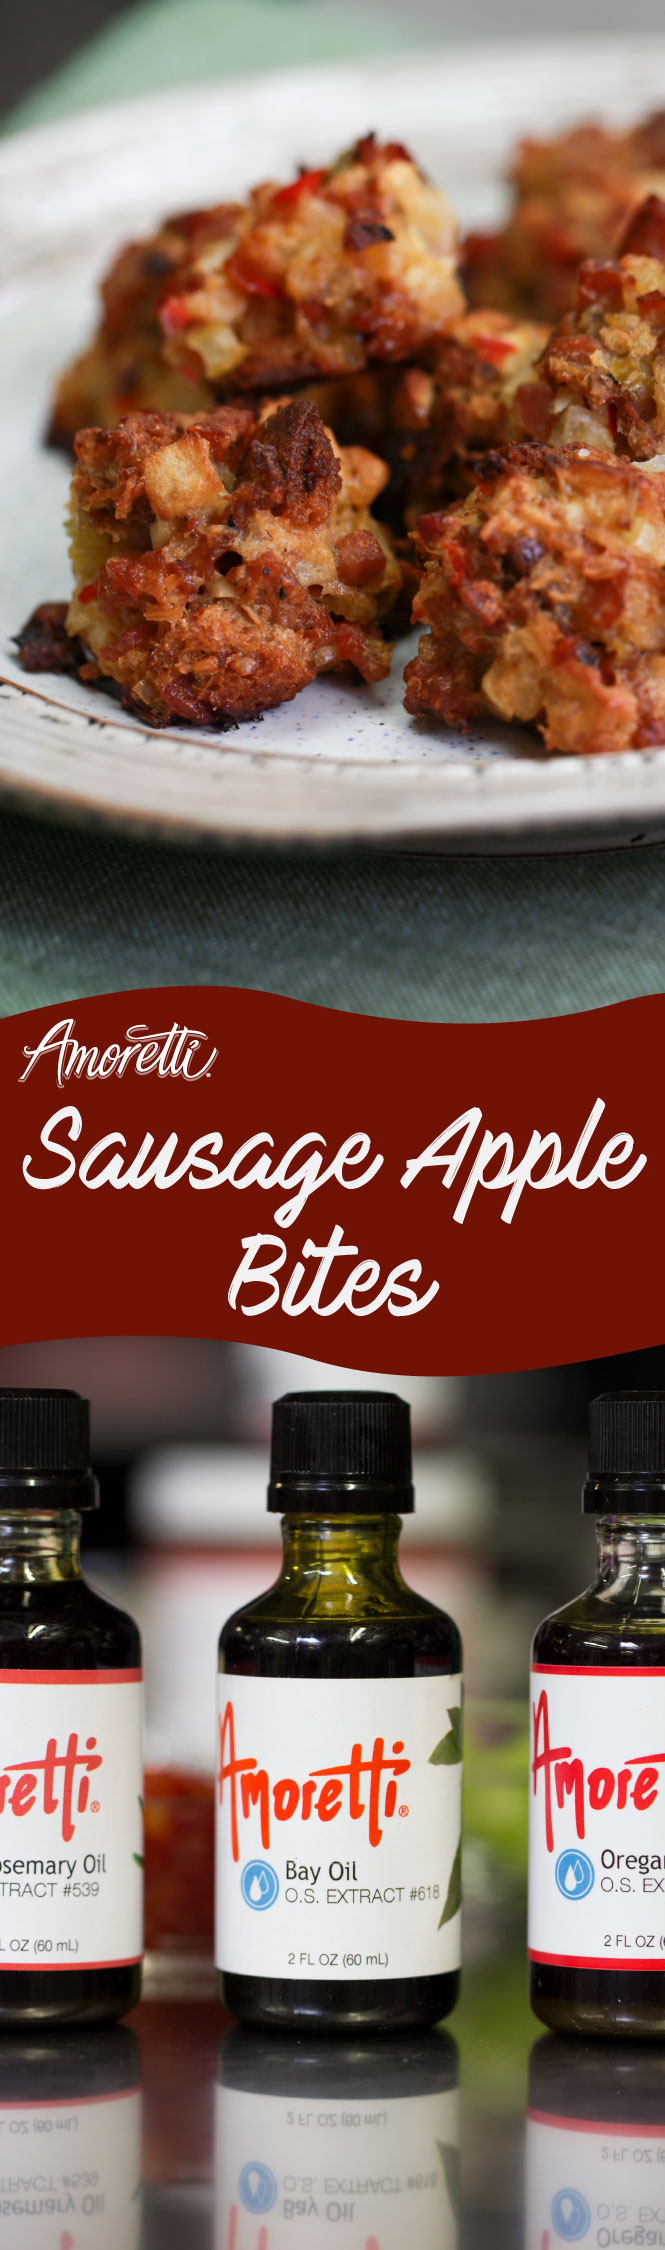 Amoretti Sausage Apple Bites: Tiny sausage apple bites but big on savory flavor!